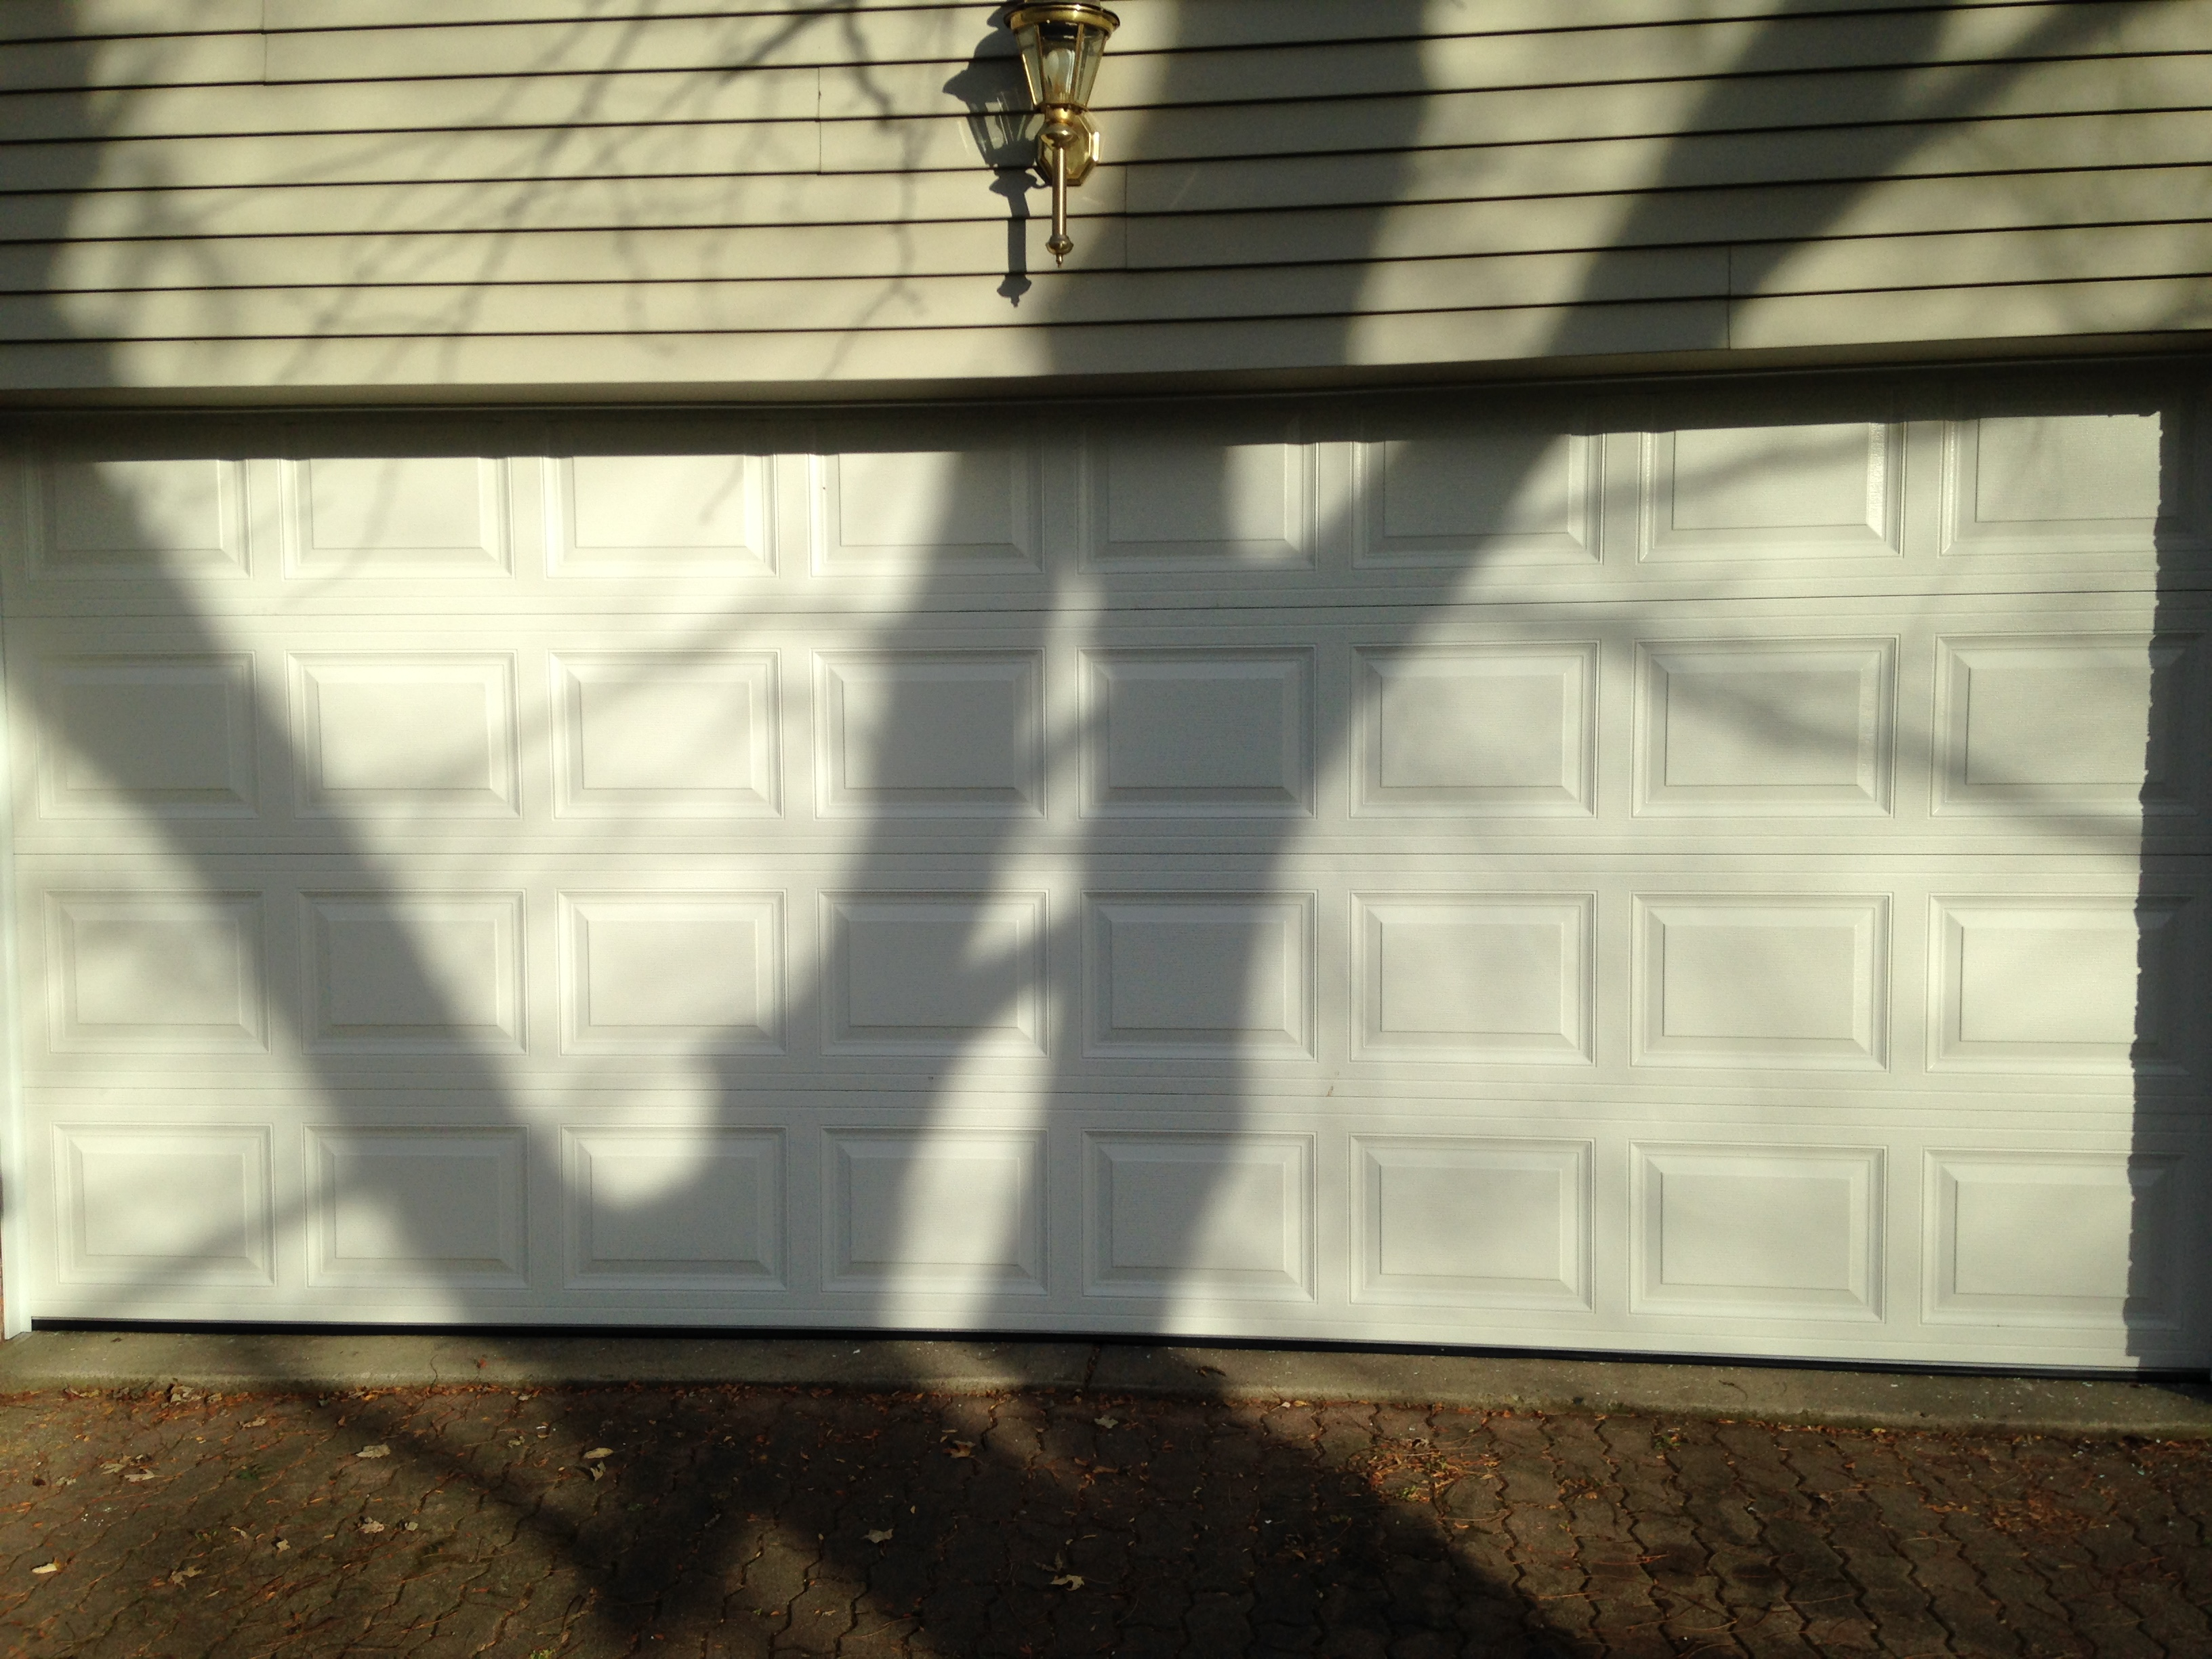 Overhead Door Dayton Ohio Garage Doors Dayton Oh Garage